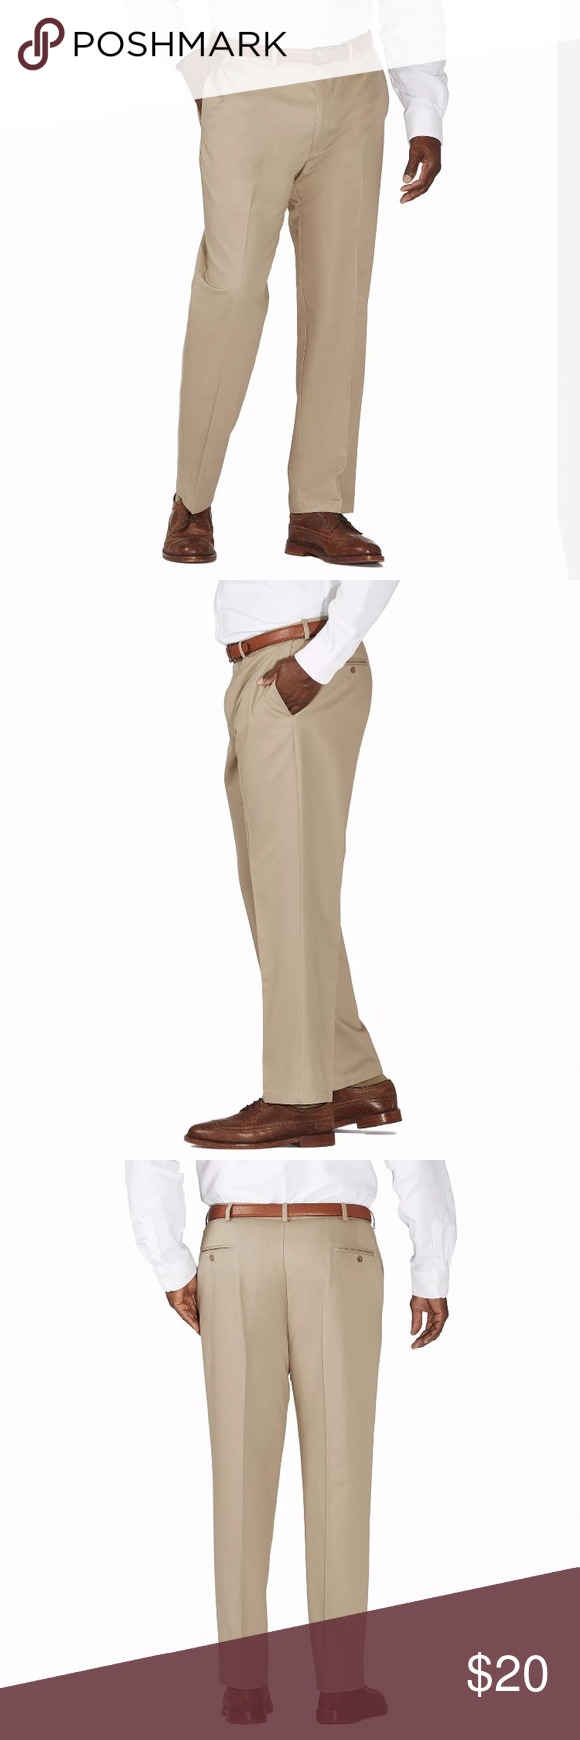 Haggar 50x30 Work To Weekend Flat Frnt Pants Khaki Haggar Clothes Design Pants